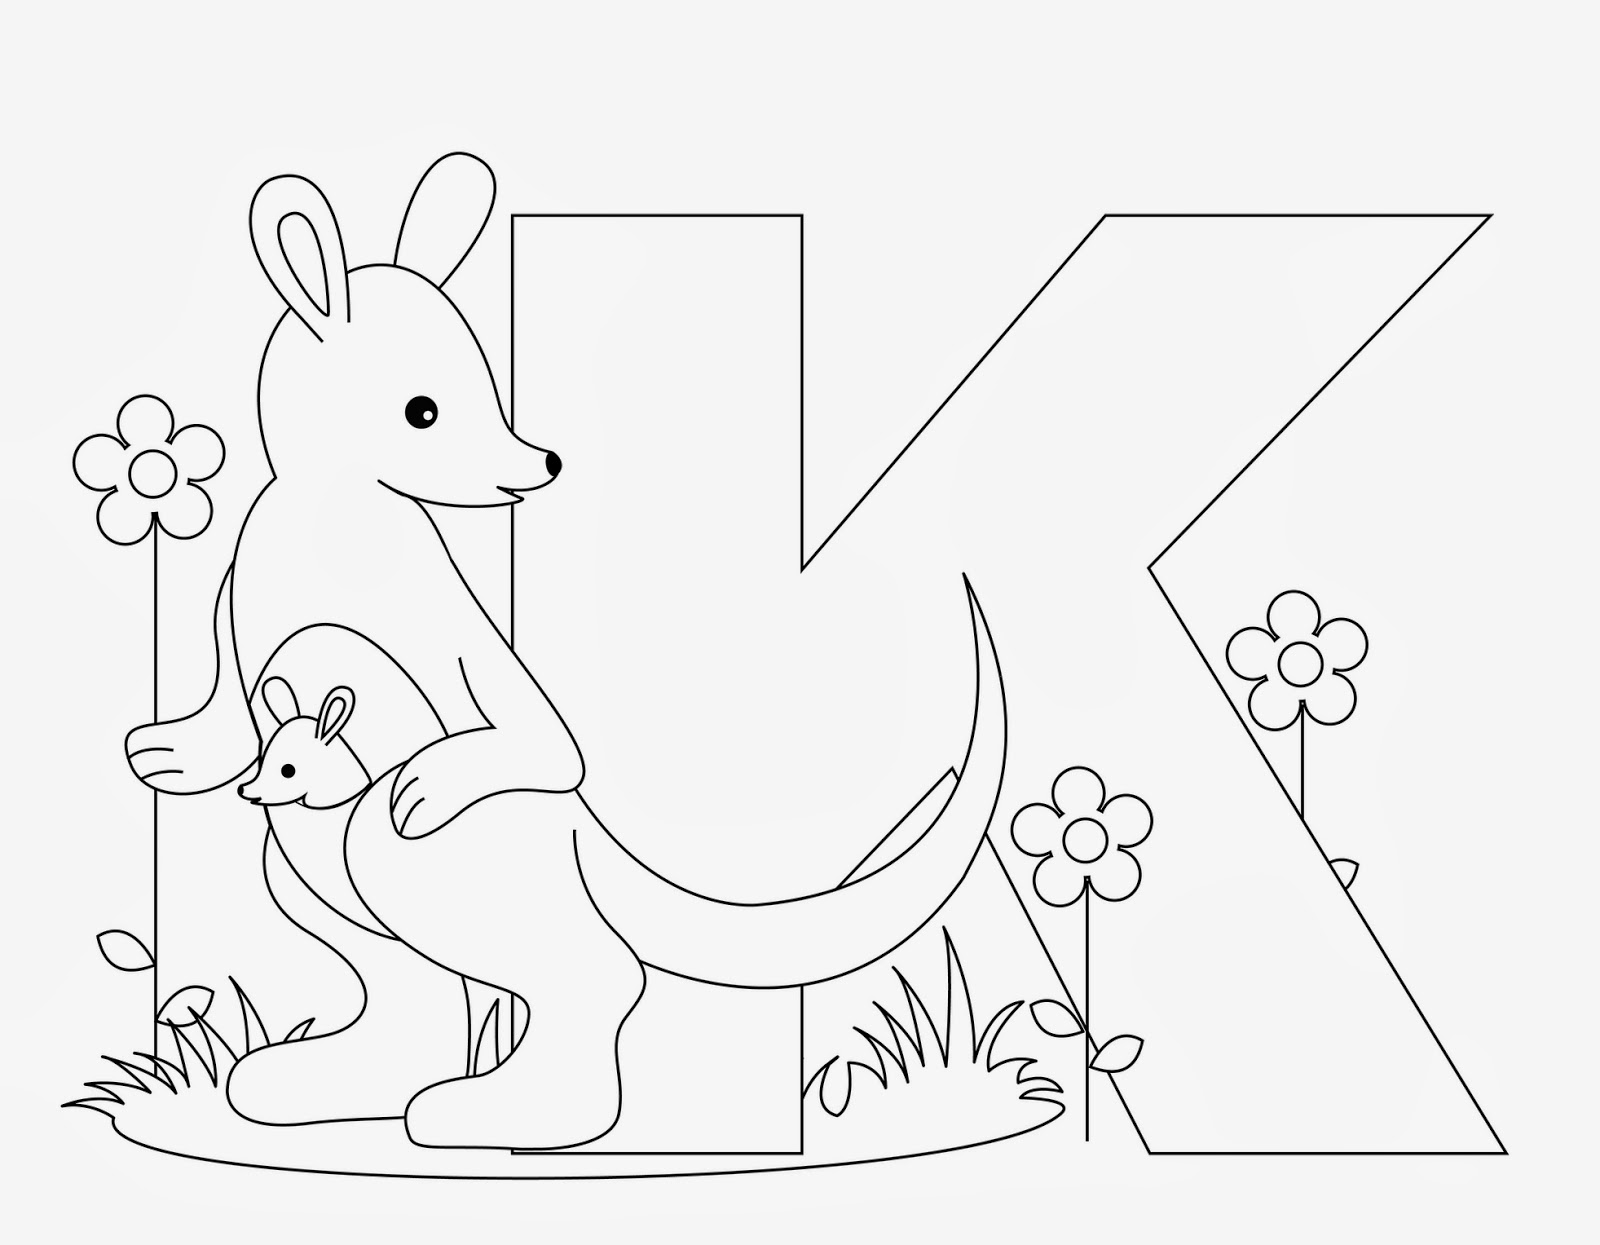 printable alphabet coloring pages - Abc Coloring Pages on Pinterest Alphabet Coloring Pages